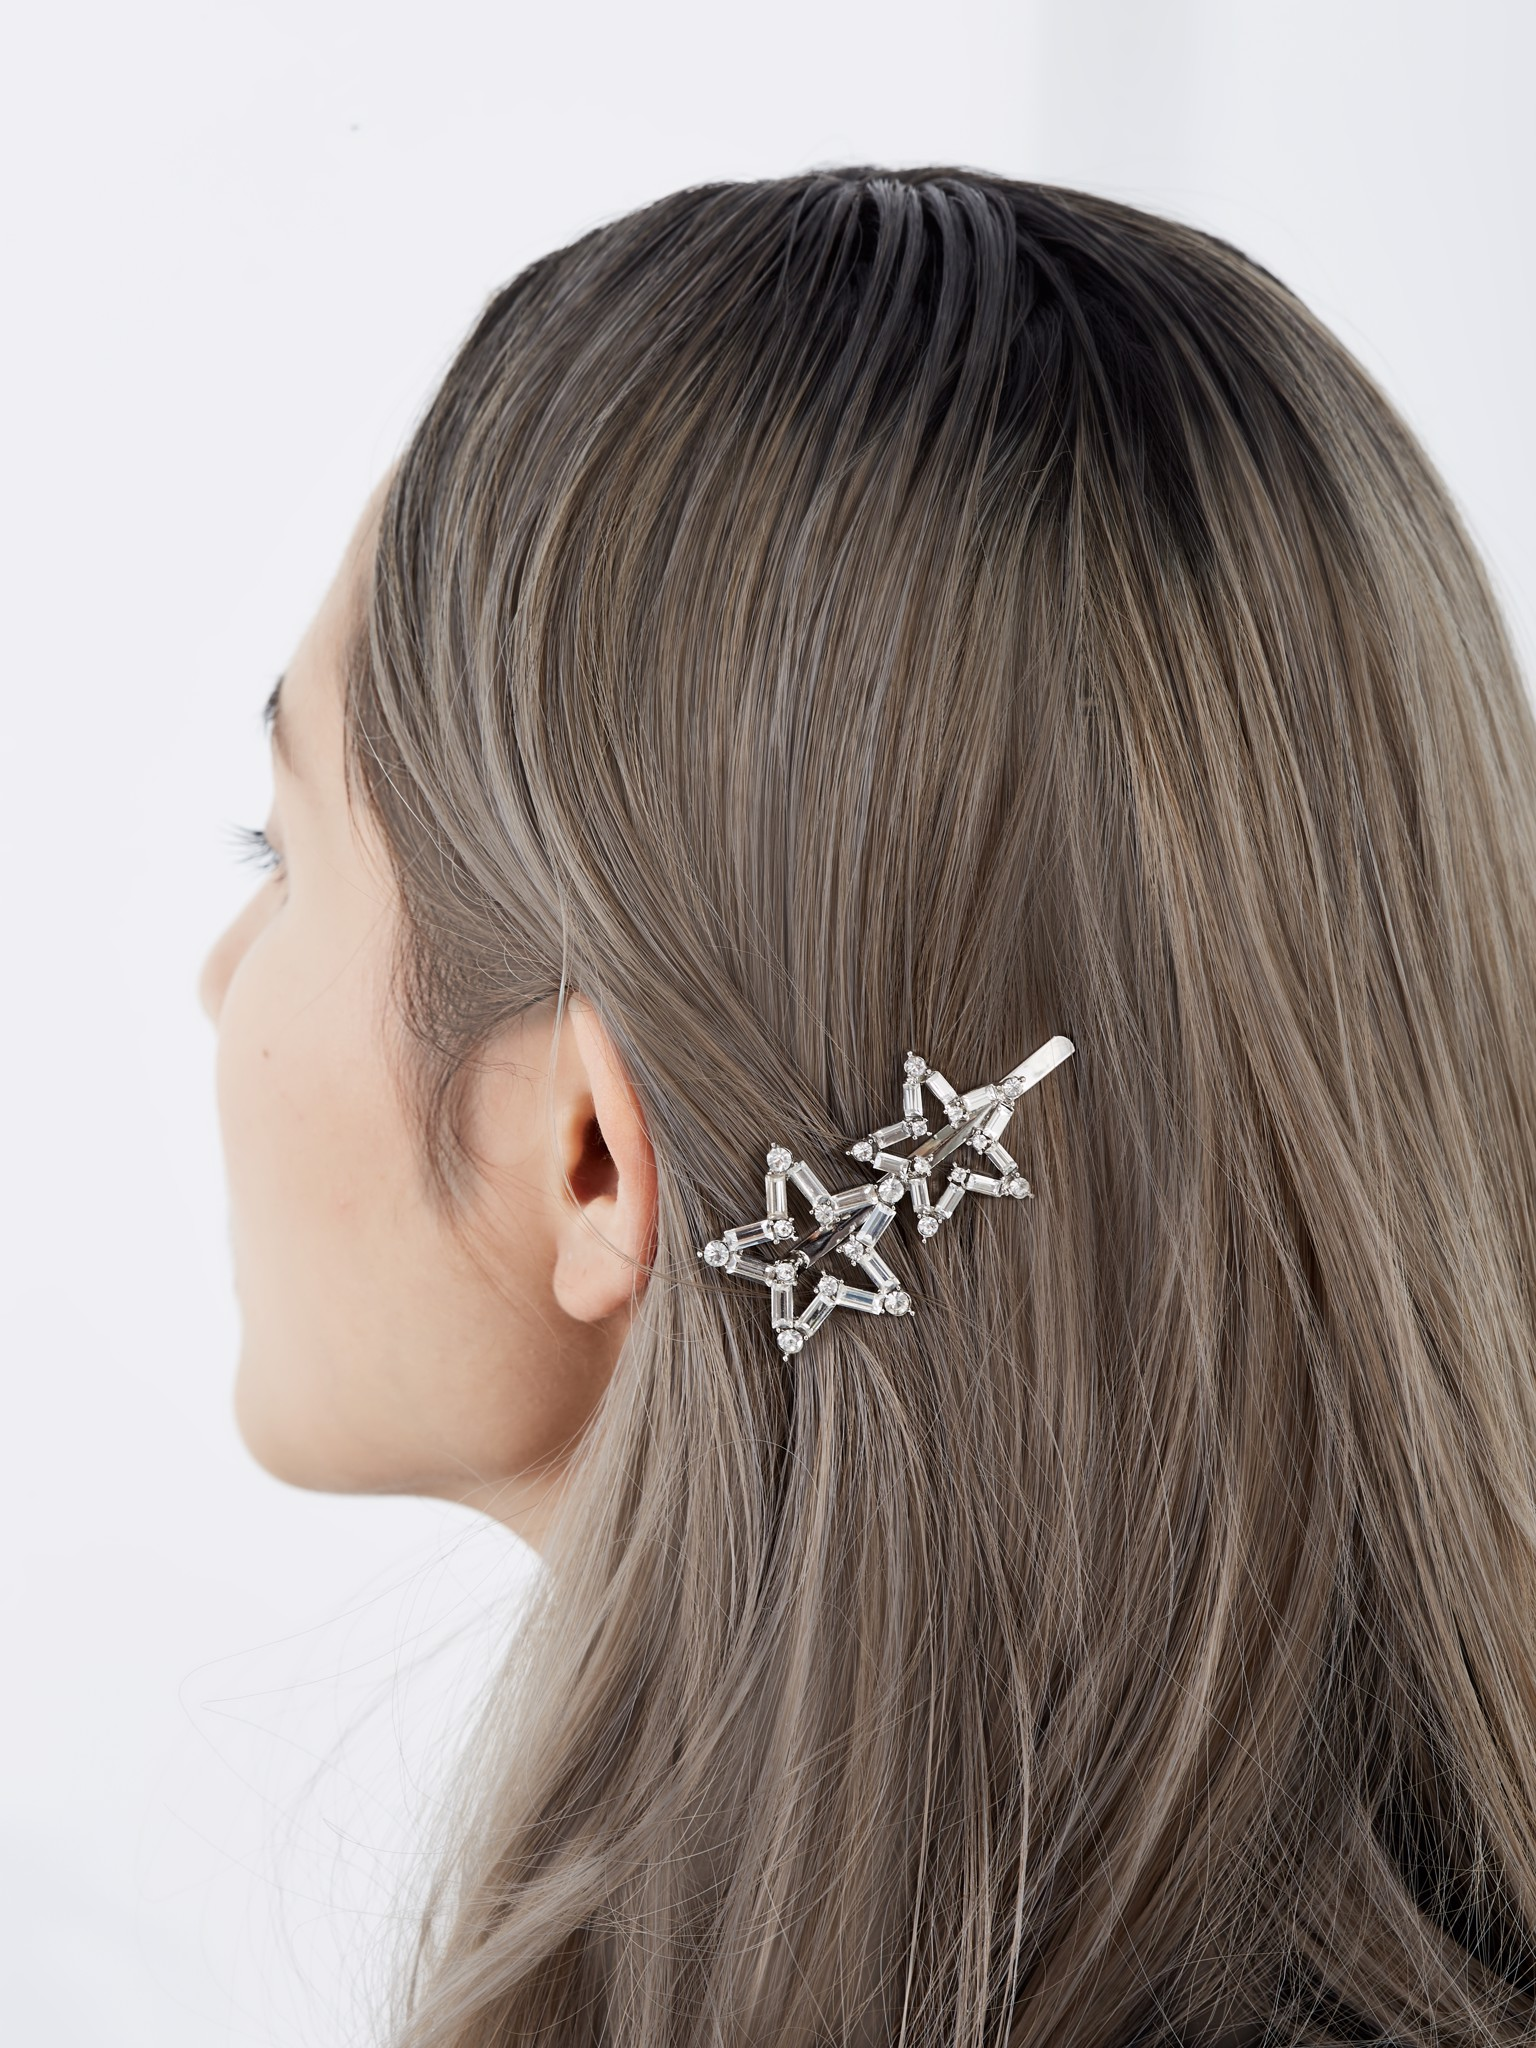 Ilia Hair Pin